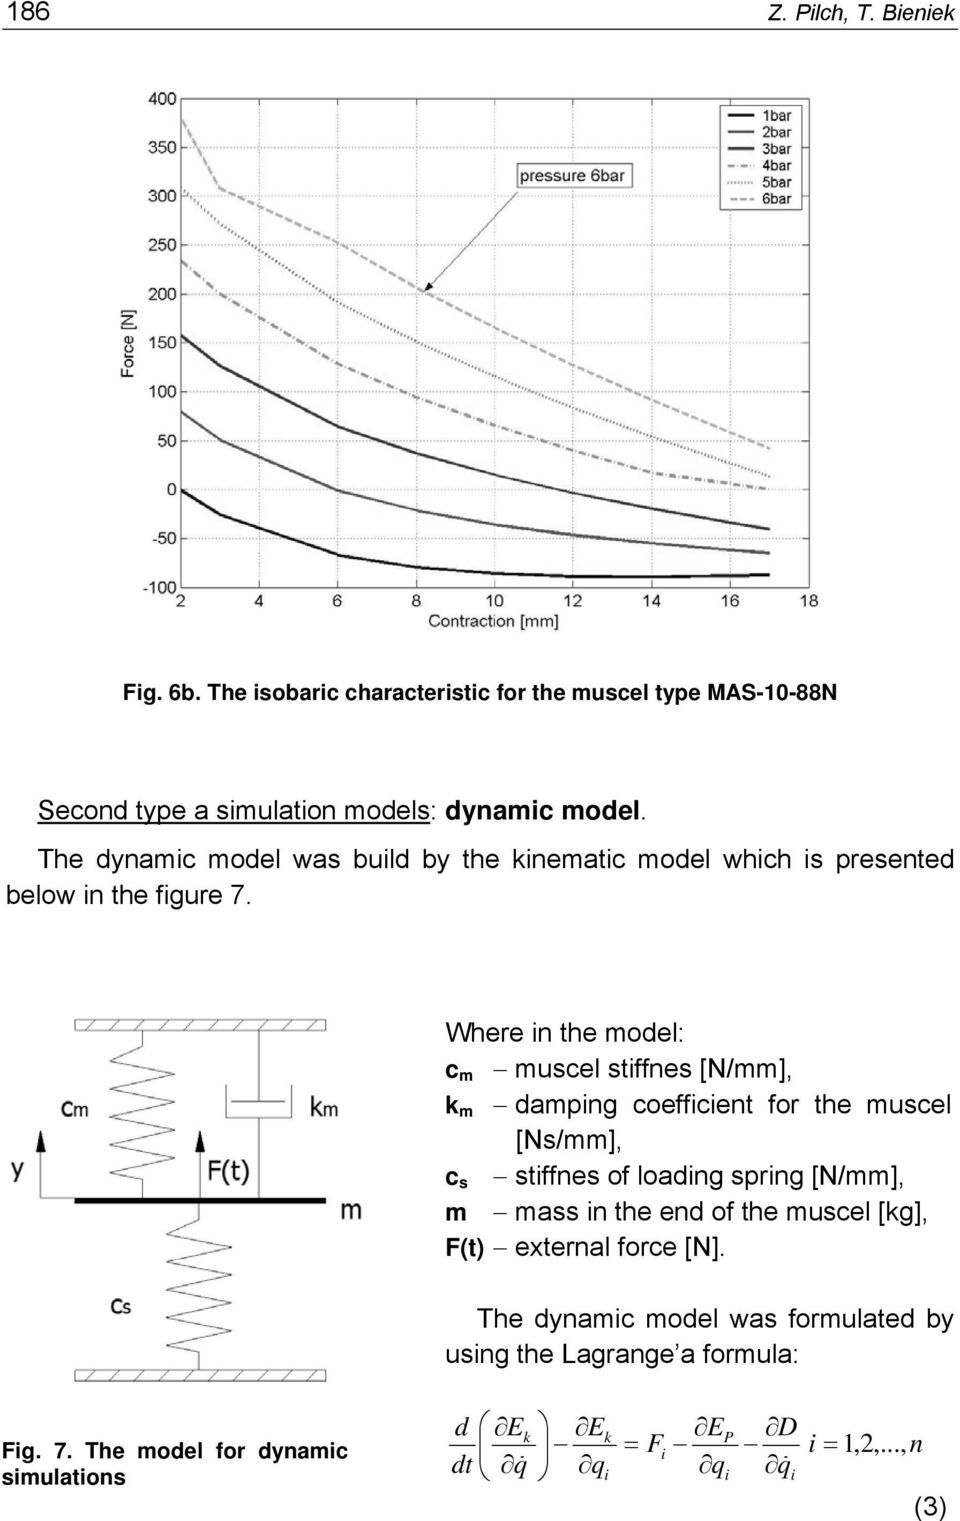 Where in the model: c m muscel stiffnes [N/mm], k m damping coefficient for the muscel [Ns/mm], c s stiffnes of loading spring [N/mm], m mass in